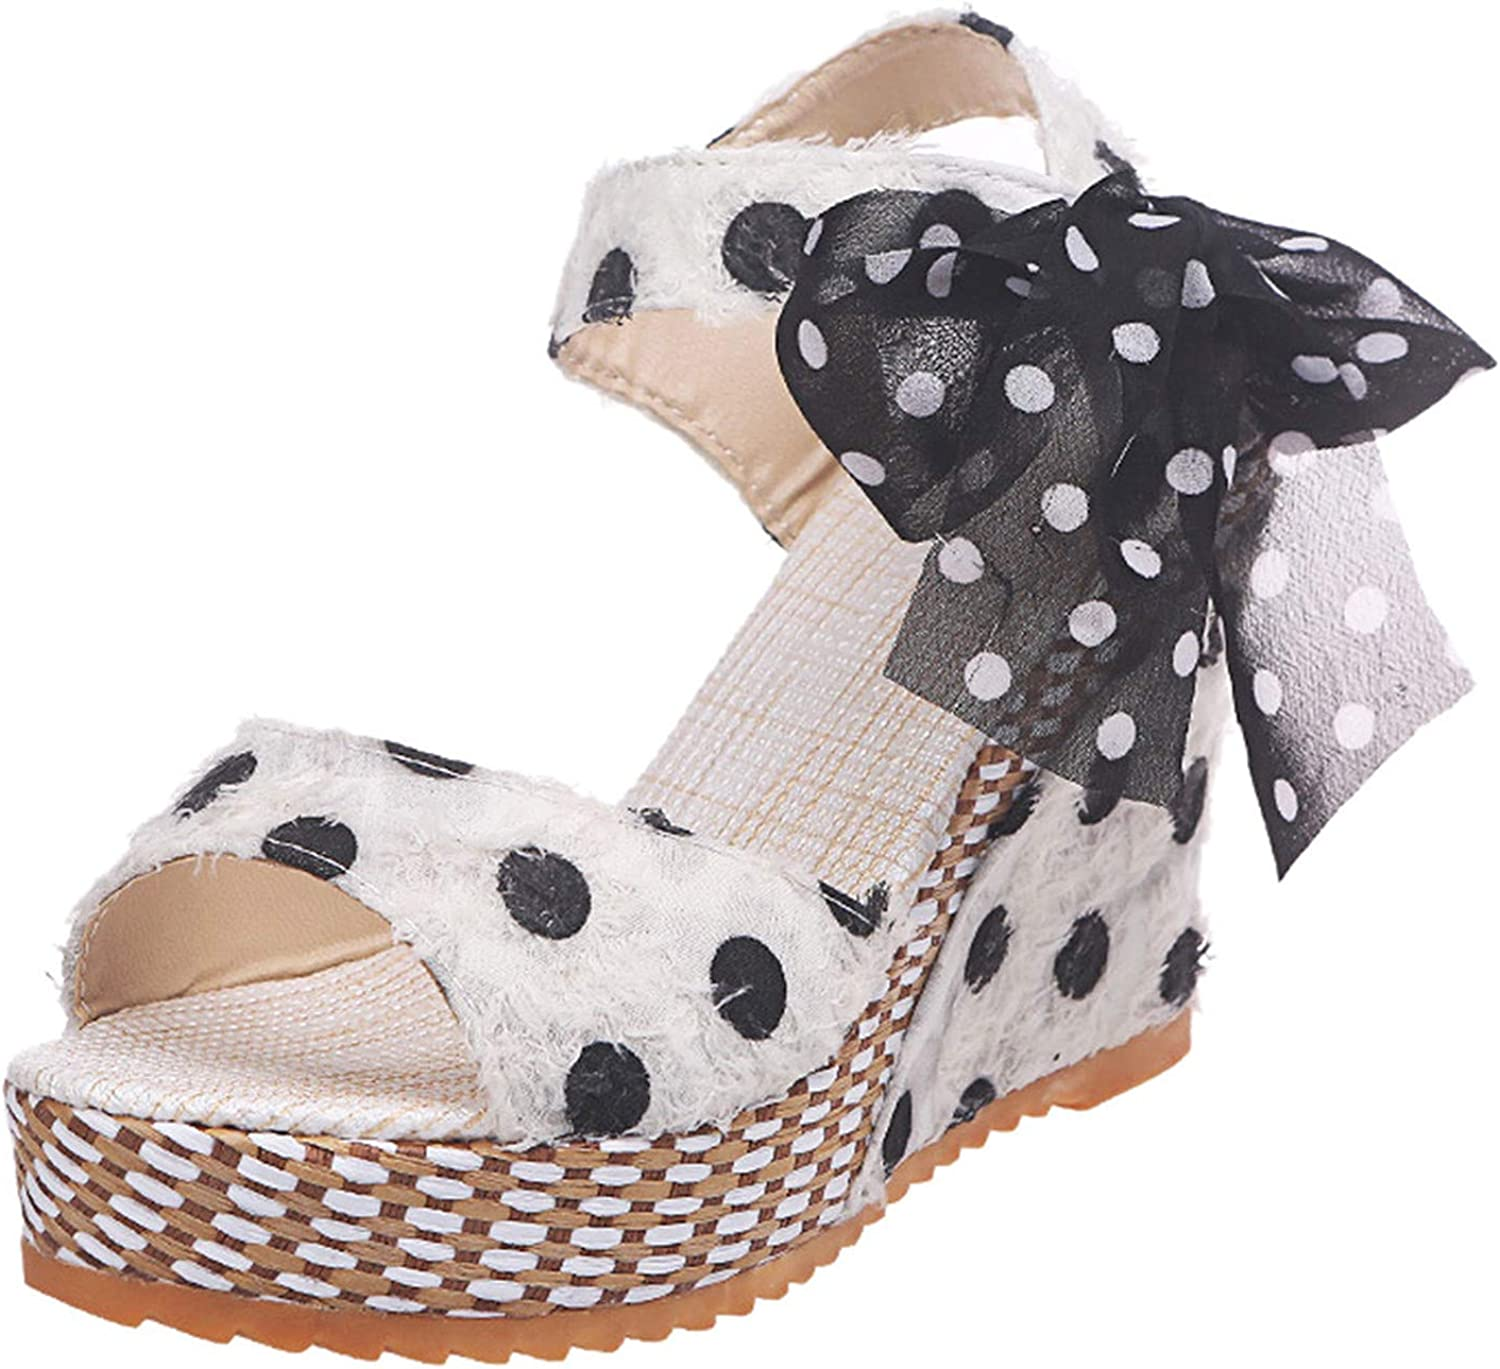 Wedges Sandals for Women Platform Ranking Luxury TOP18 Summer Dressy D Fashion Casual